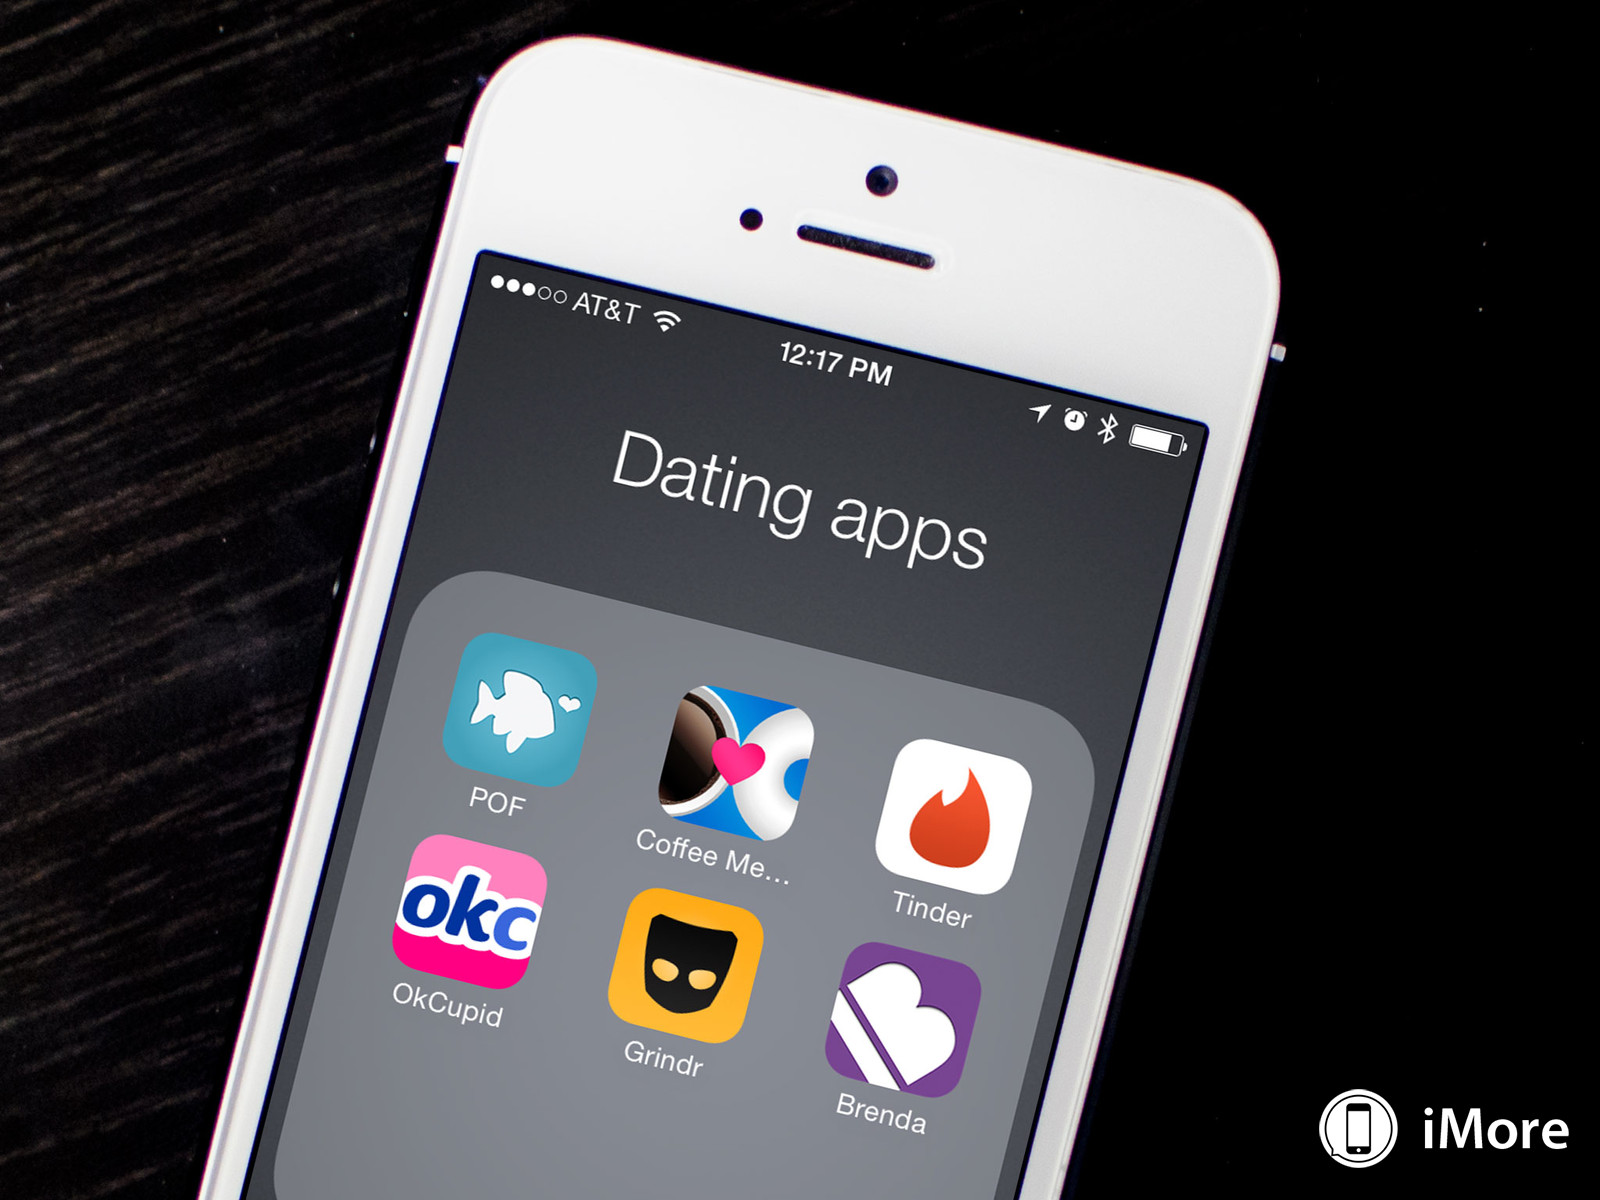 What the actual best dating apps